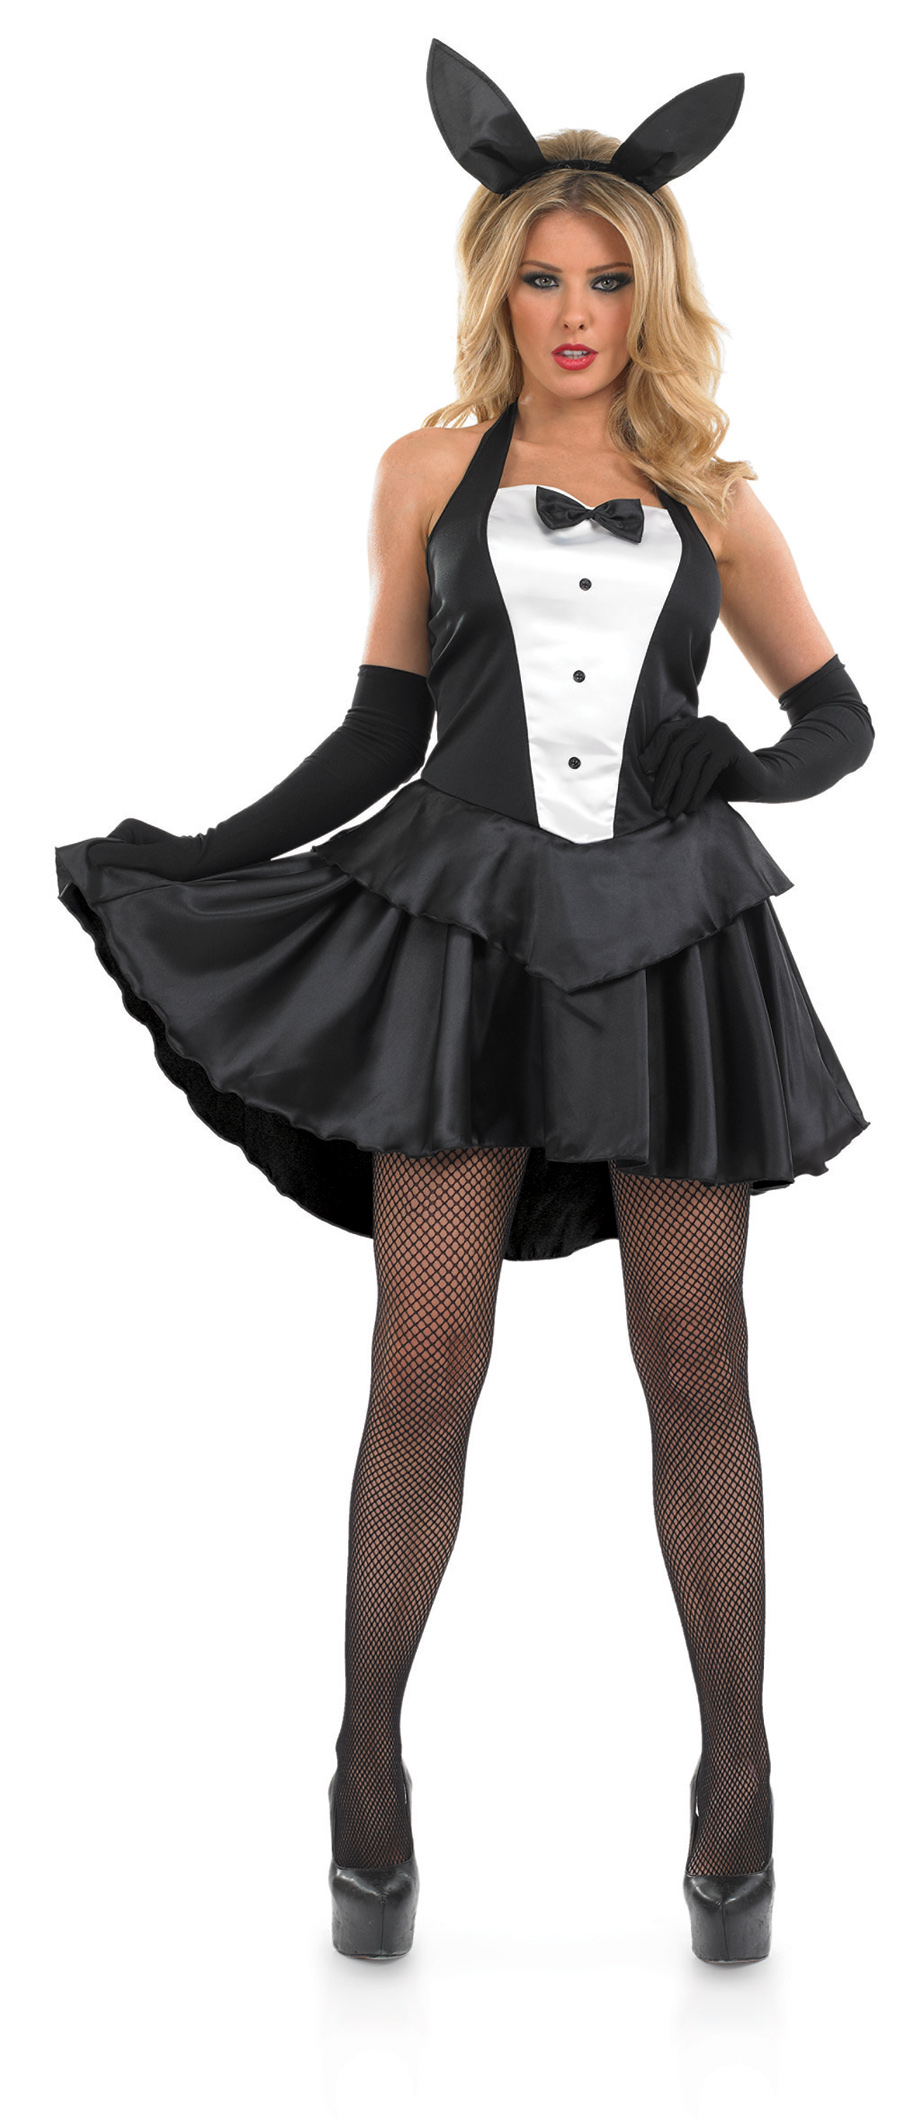 e2cd4bc817e Bunny Hostess Girl Costume